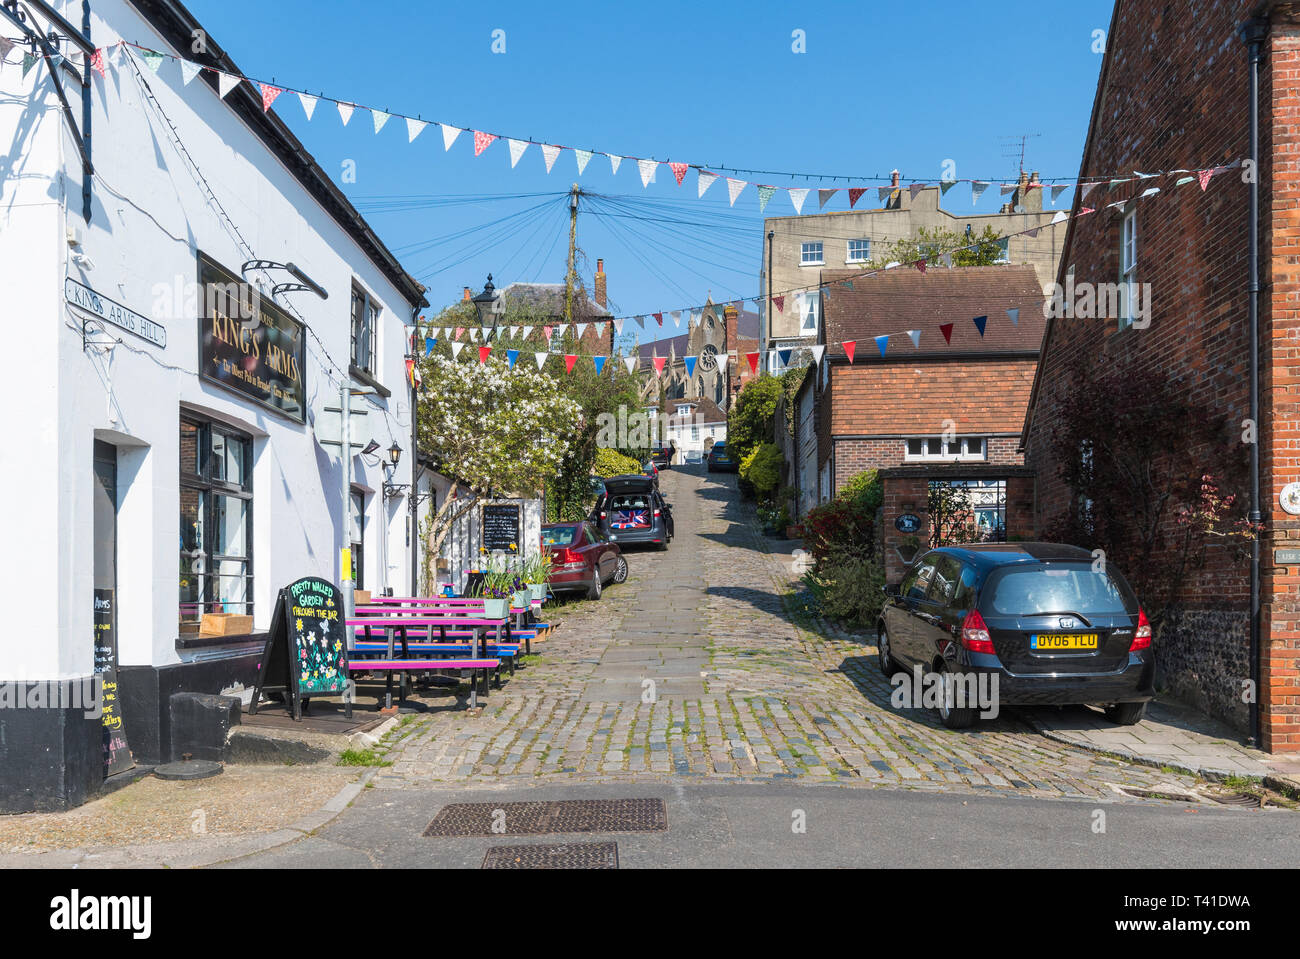 Cars parked on Kings Arms Hill, a steep cobbled road in Arundel, West Sussex, England, UK. - Stock Image